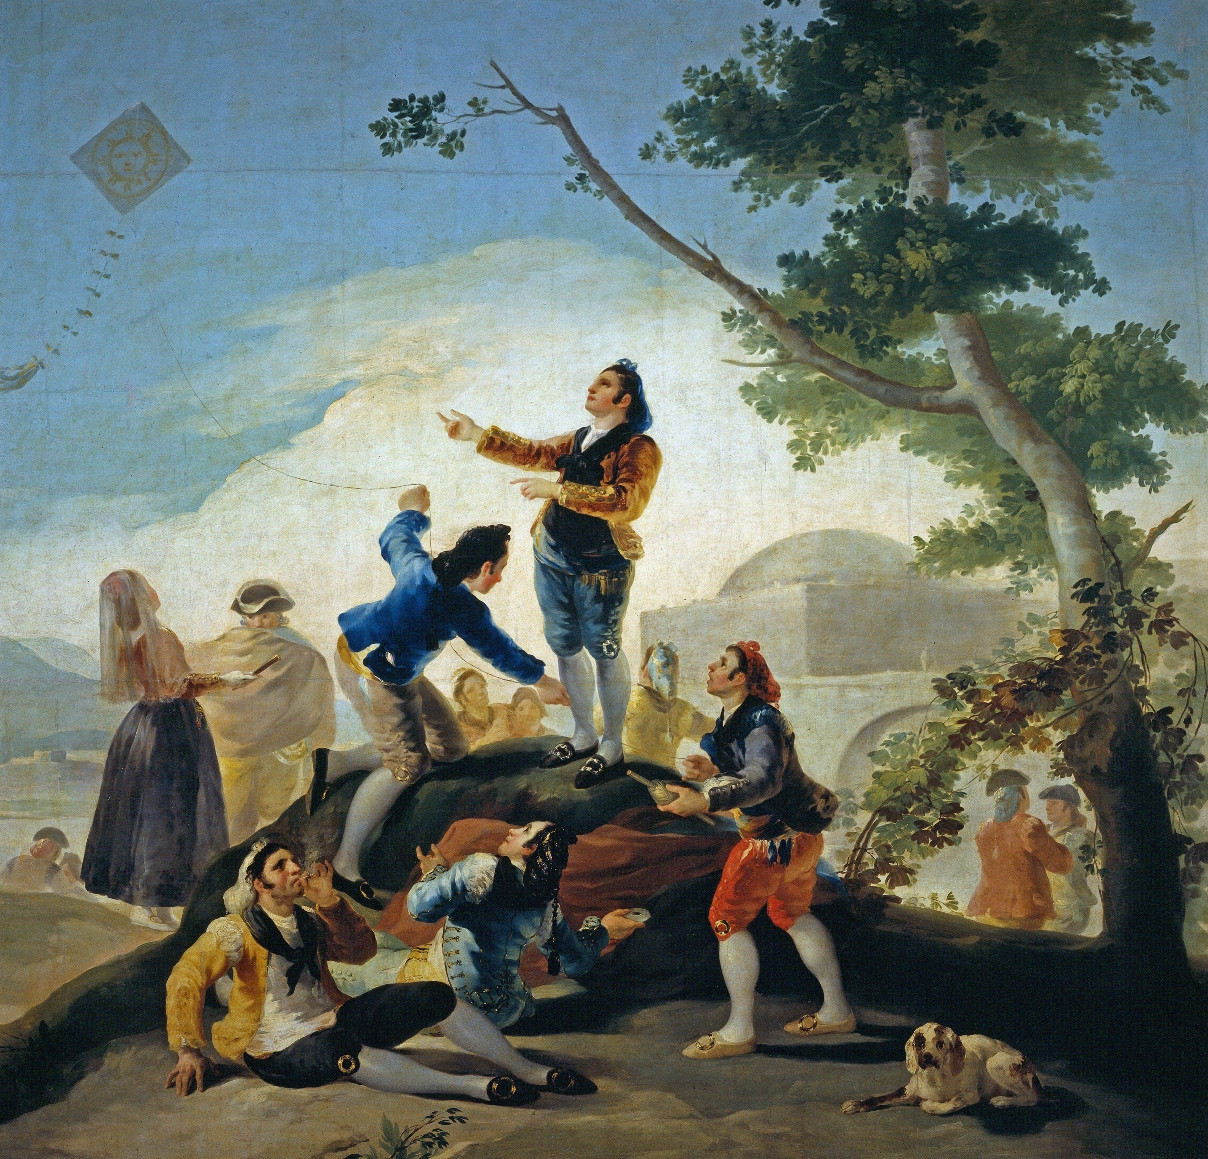 La cometa the kite 1778 museo del prado madrid spain